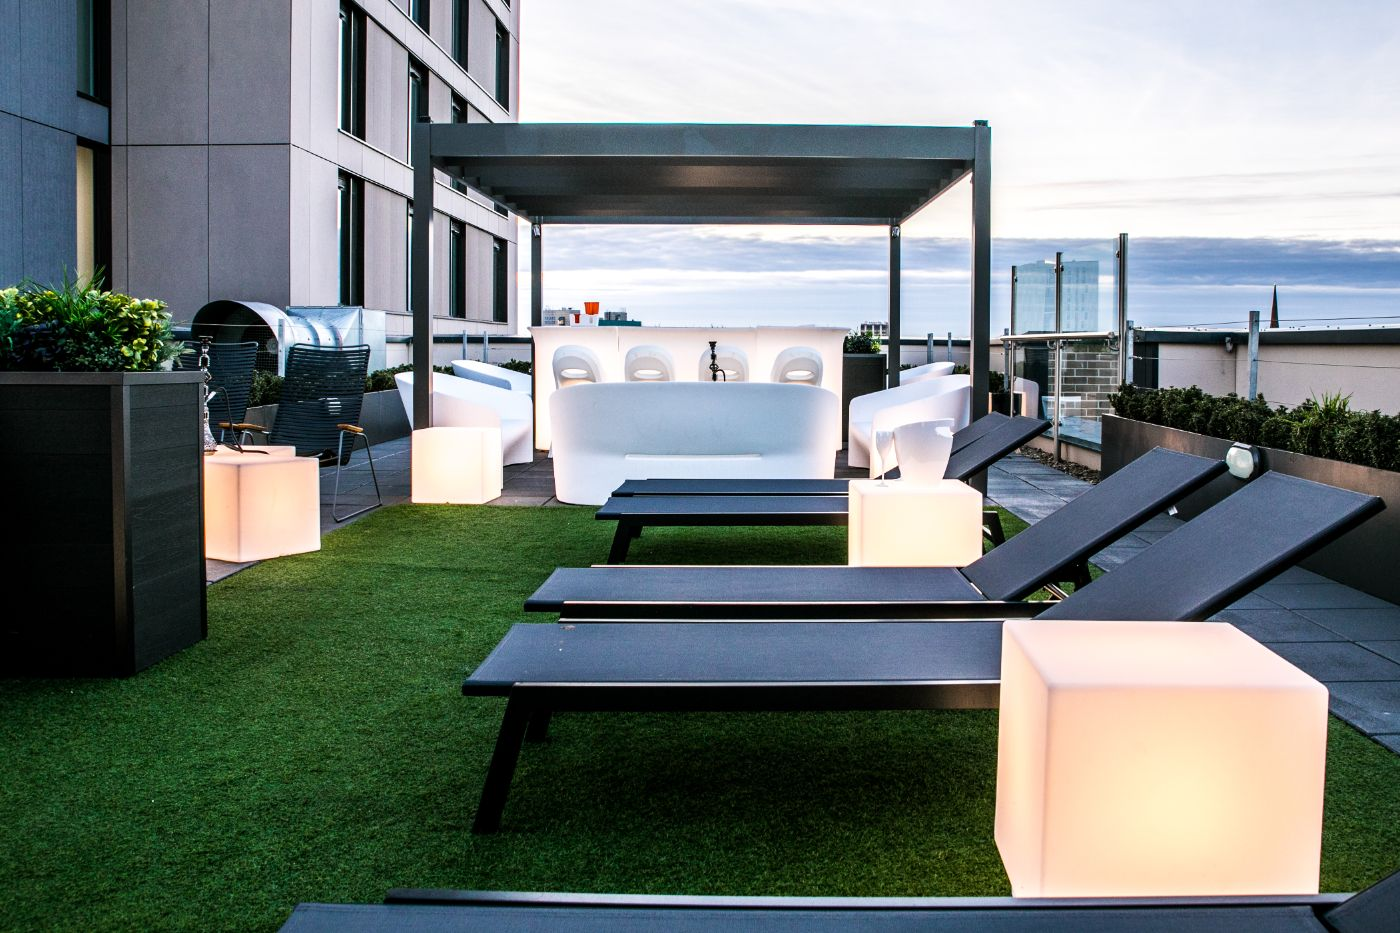 33 Parkside student accommodation roof terrace 4